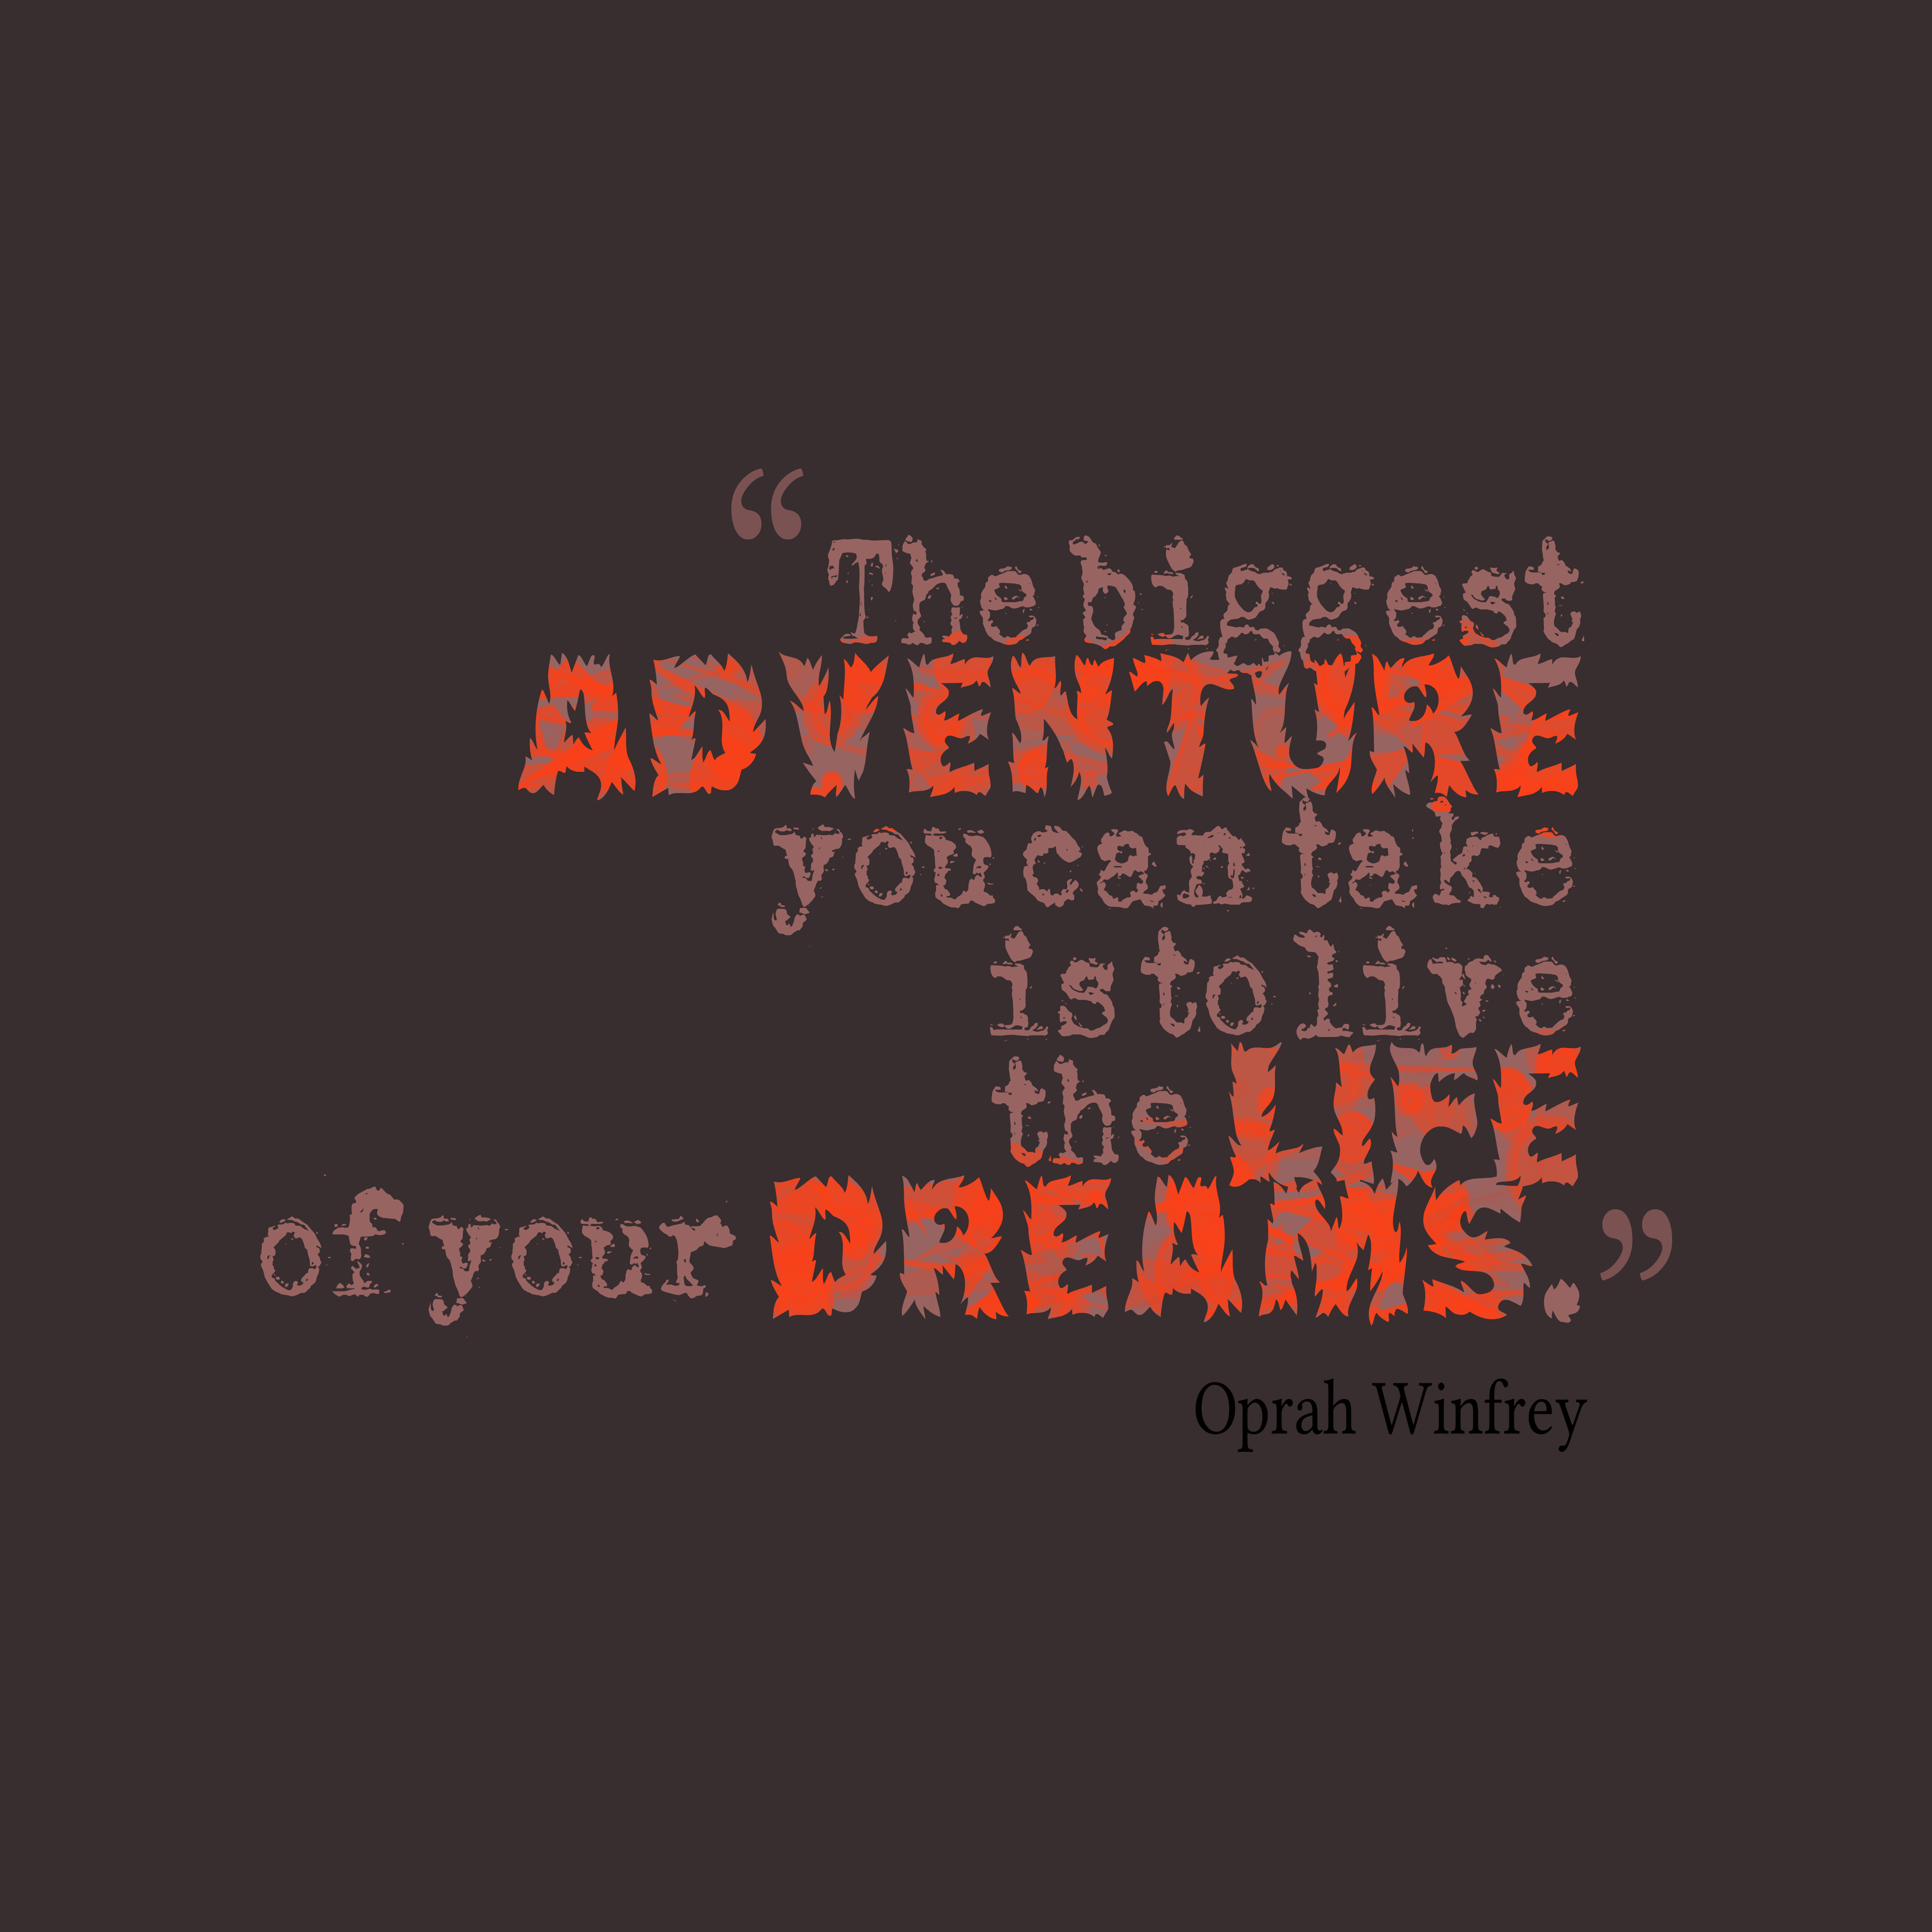 The biggest adventure you can take is to live the life of your dreams - Oprah Winfrey